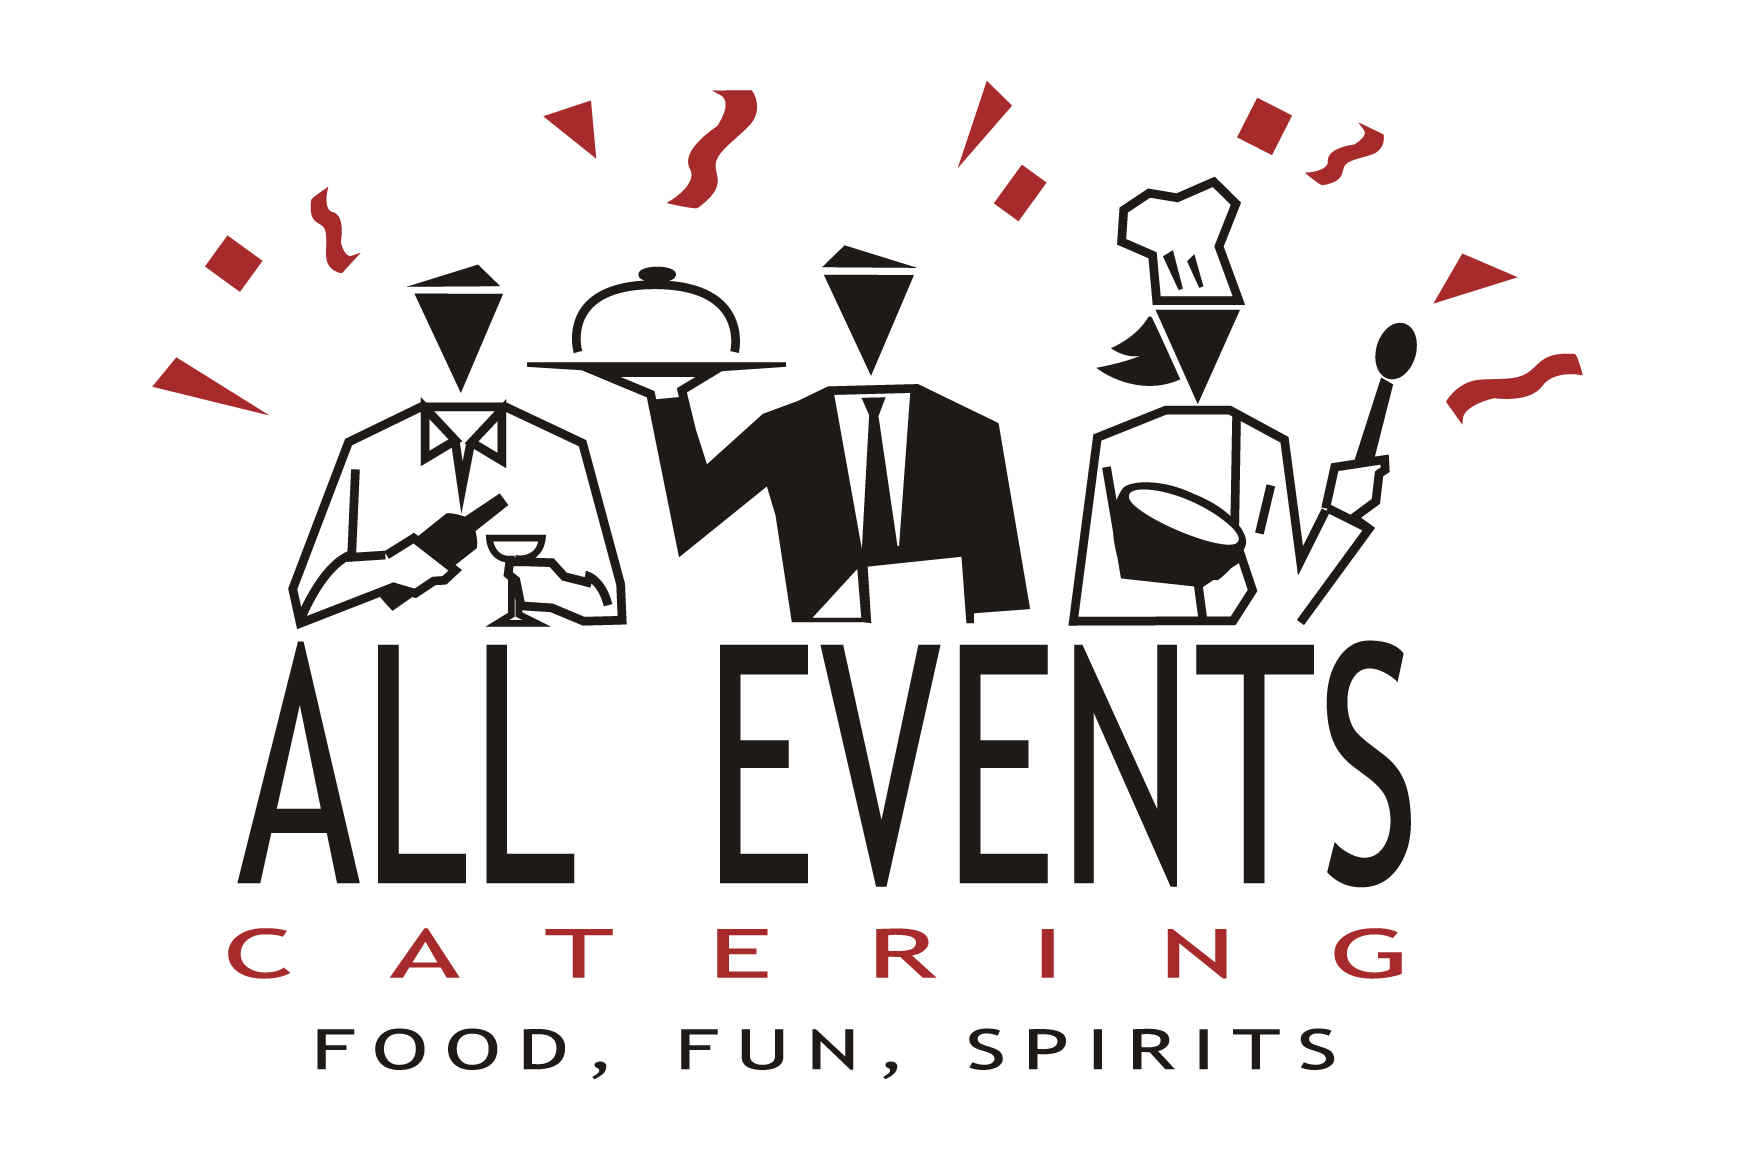 Catering Services Clipart